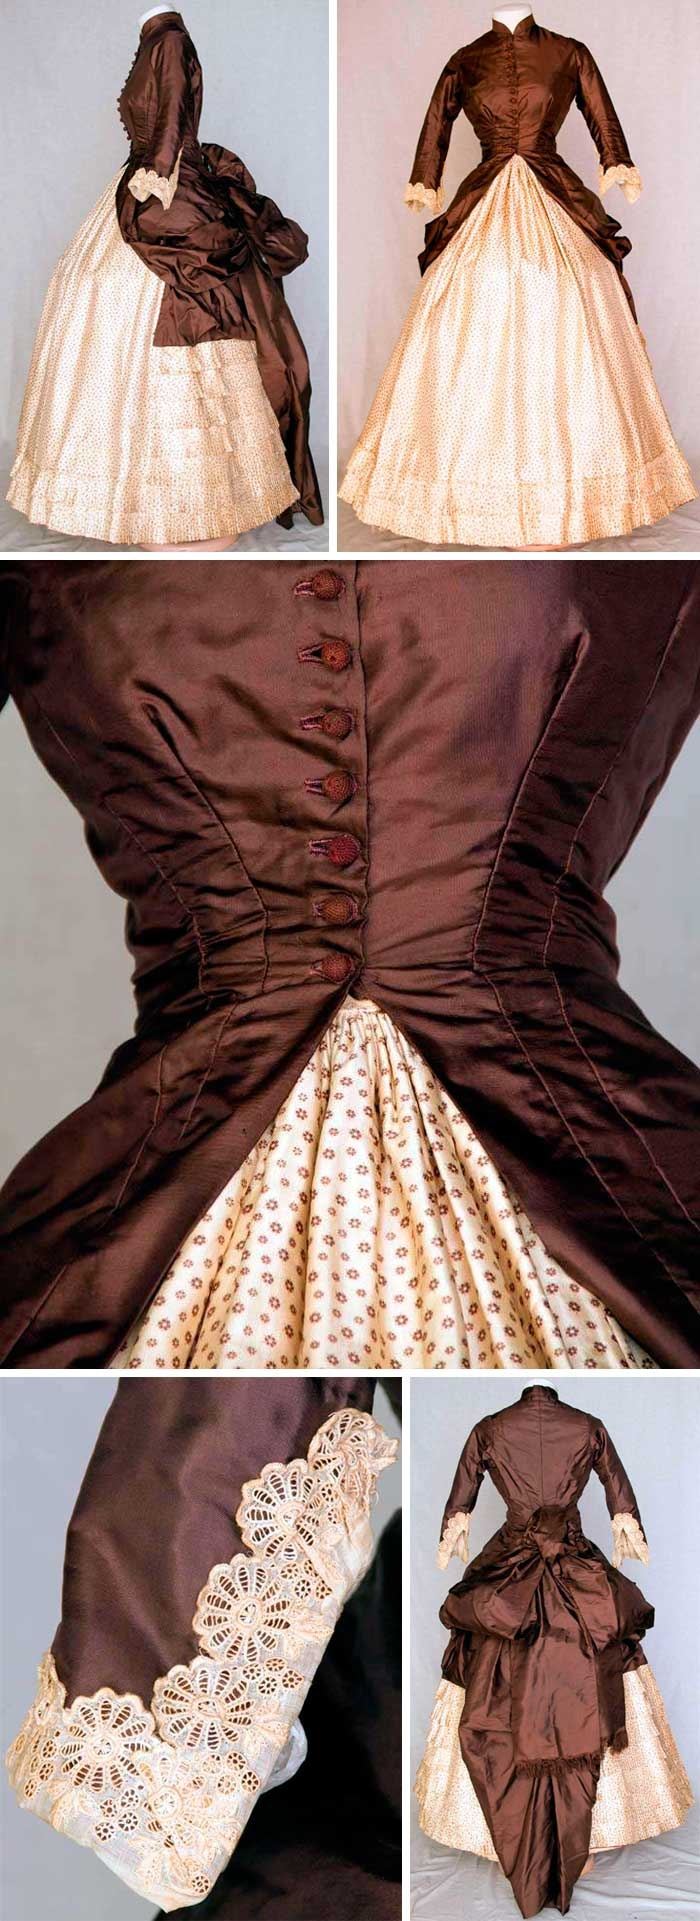 Dress, ca. 1880. Chocolate brown silk polonaise bodice dips at the sides to drape and form back bustle. Ten crochet ball buttons, embroidered lace cuffs, tan cotton lining. Cream silk twill skirt with tiny brown floral print, square insert in back of solid brown and bustle ties. Augusta Auctions